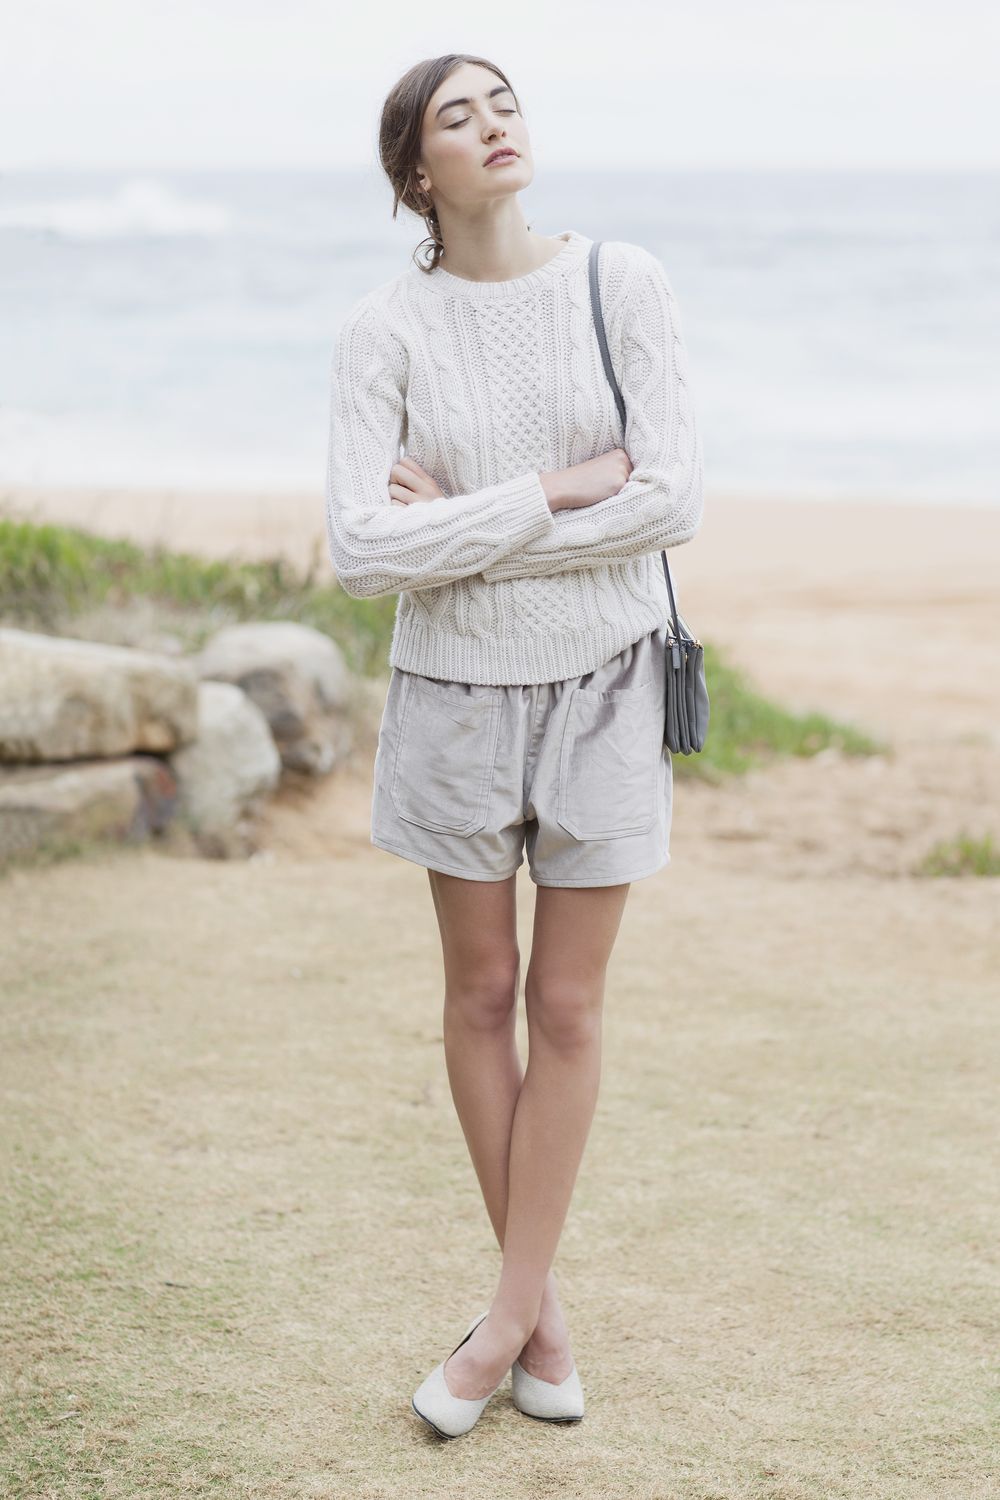 A.P.C cable-knit sweater from Bloodorange, Stylist's own Celine bag, Carly Hunter velvet shorts